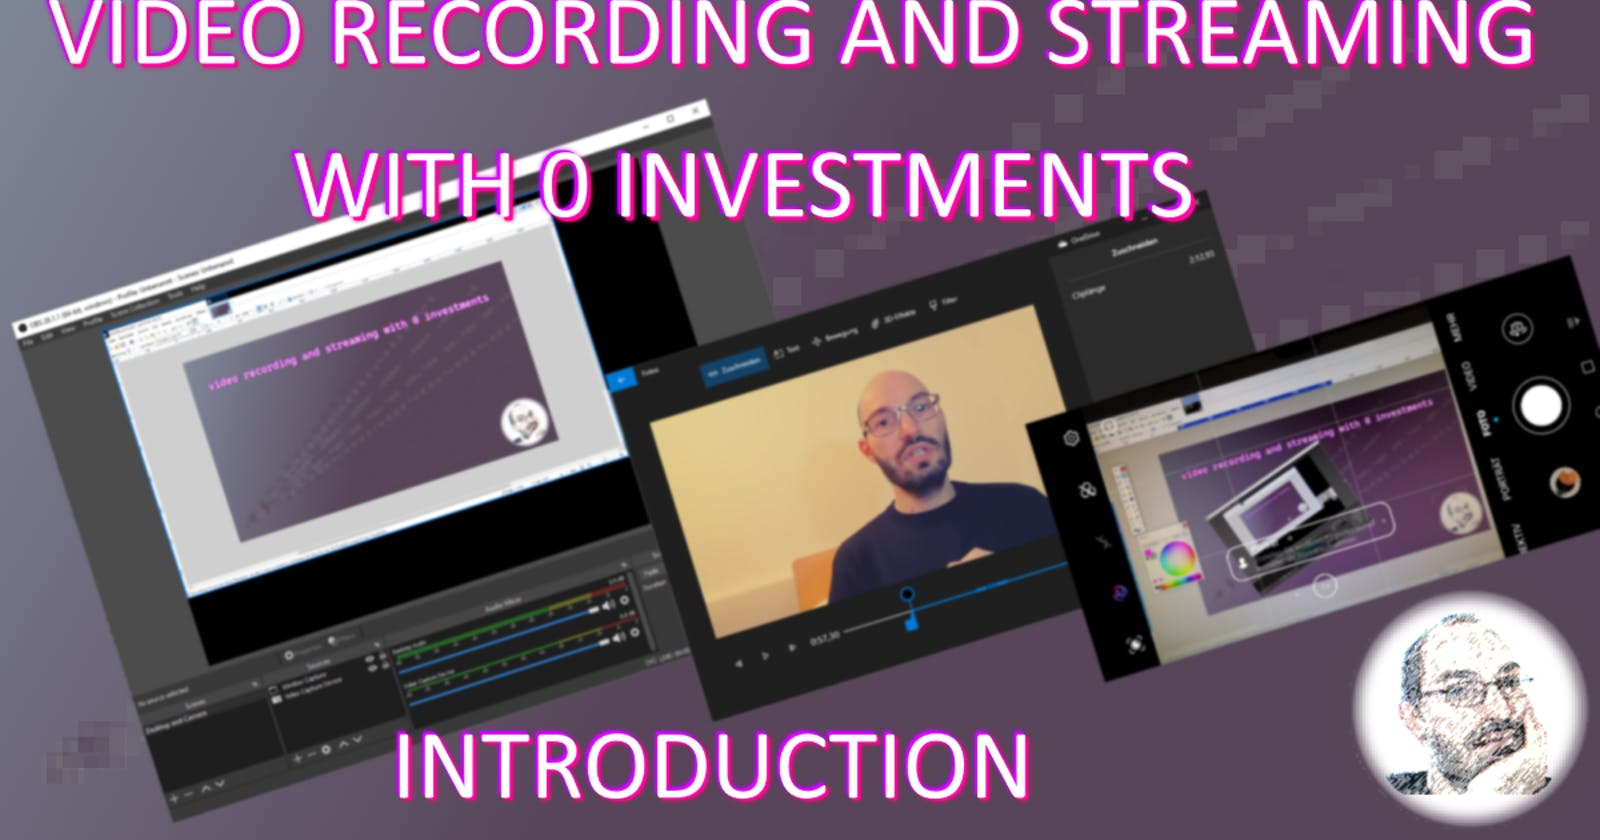 Video recording and streaming with 0 investments - introduction